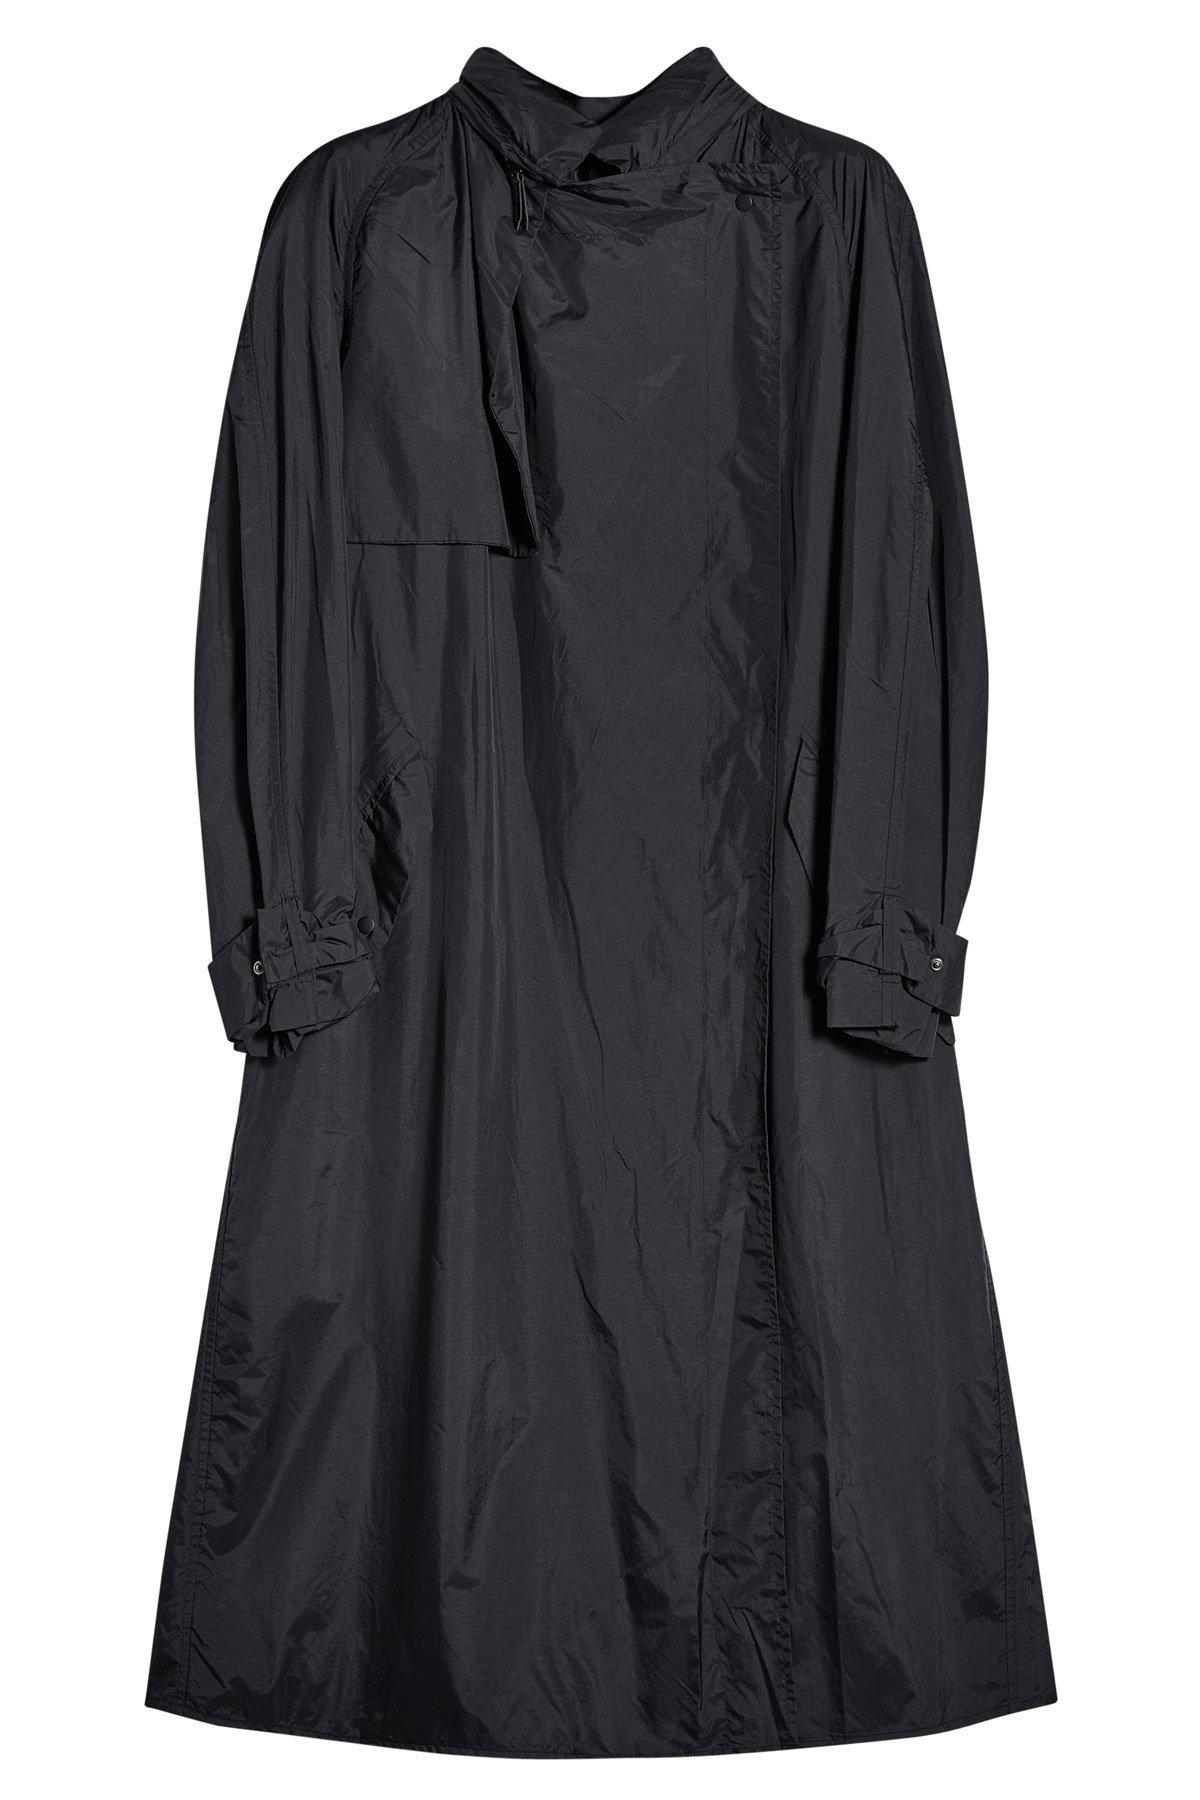 Isabel Marant Fabric Coat In Black